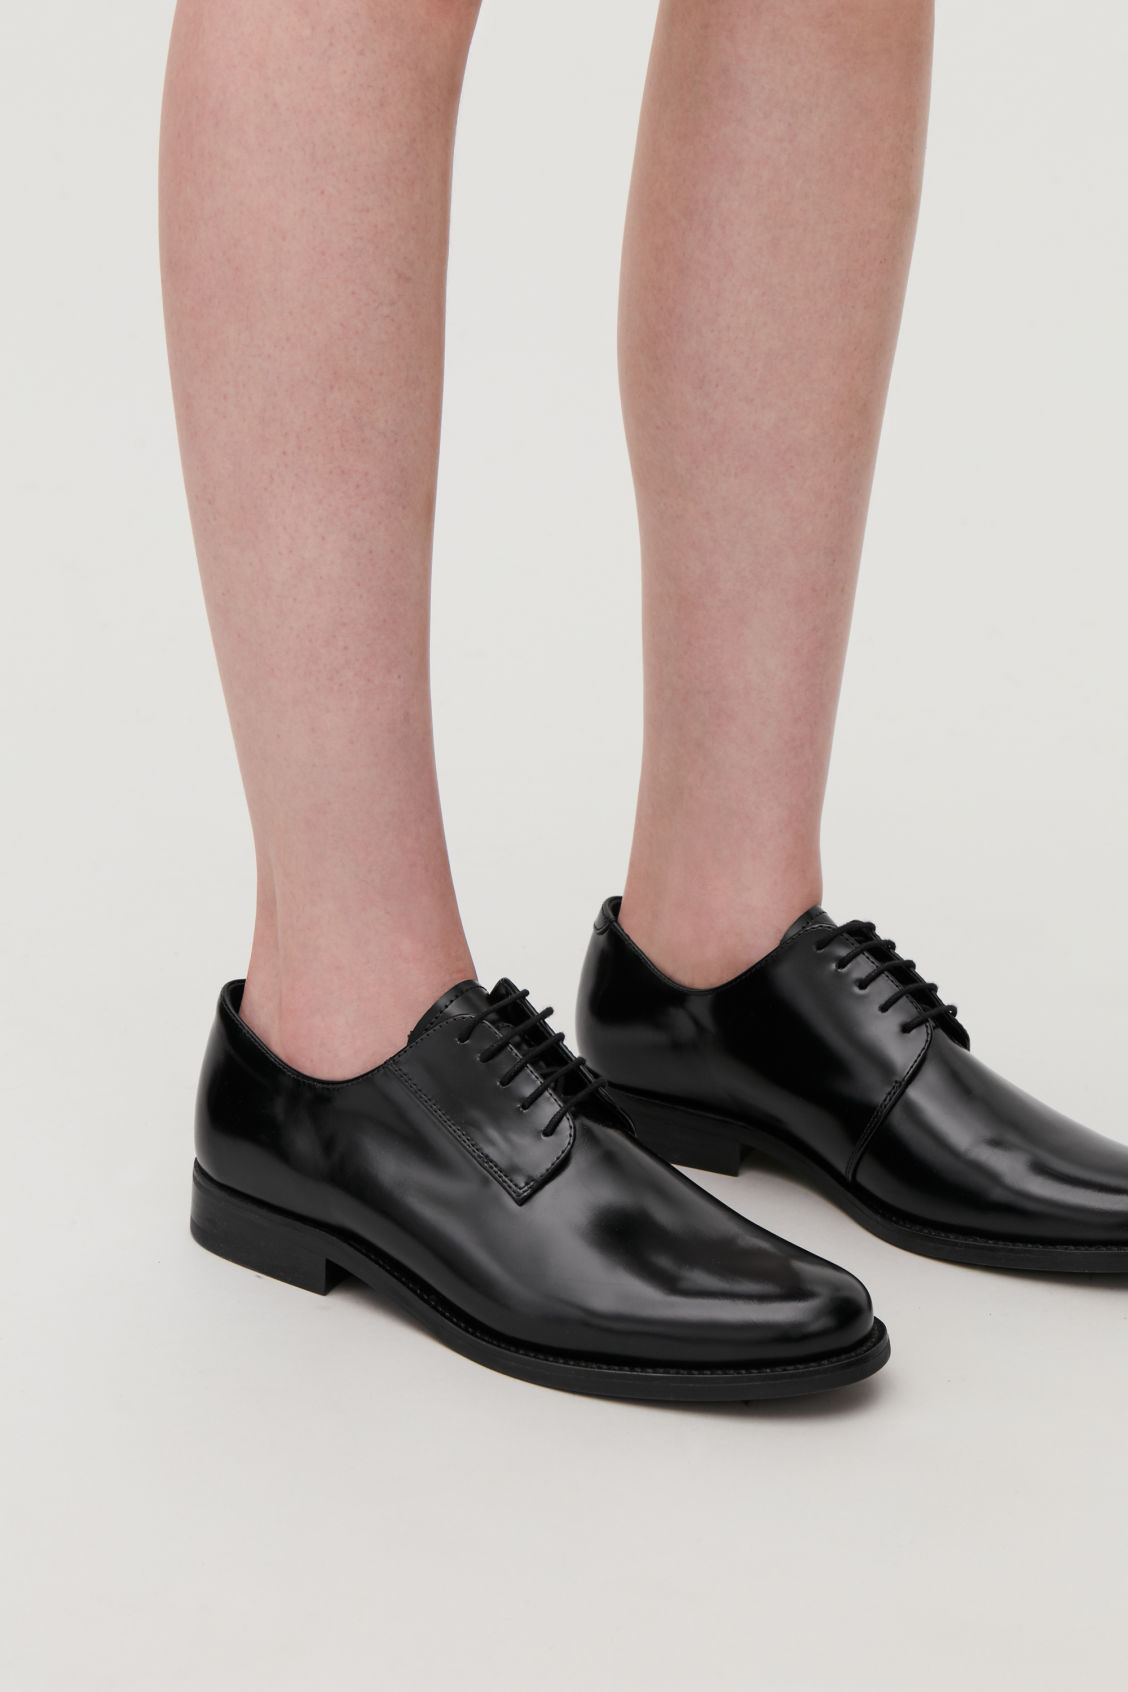 Detailed image of Cos round-toe leather oxford shoes in black